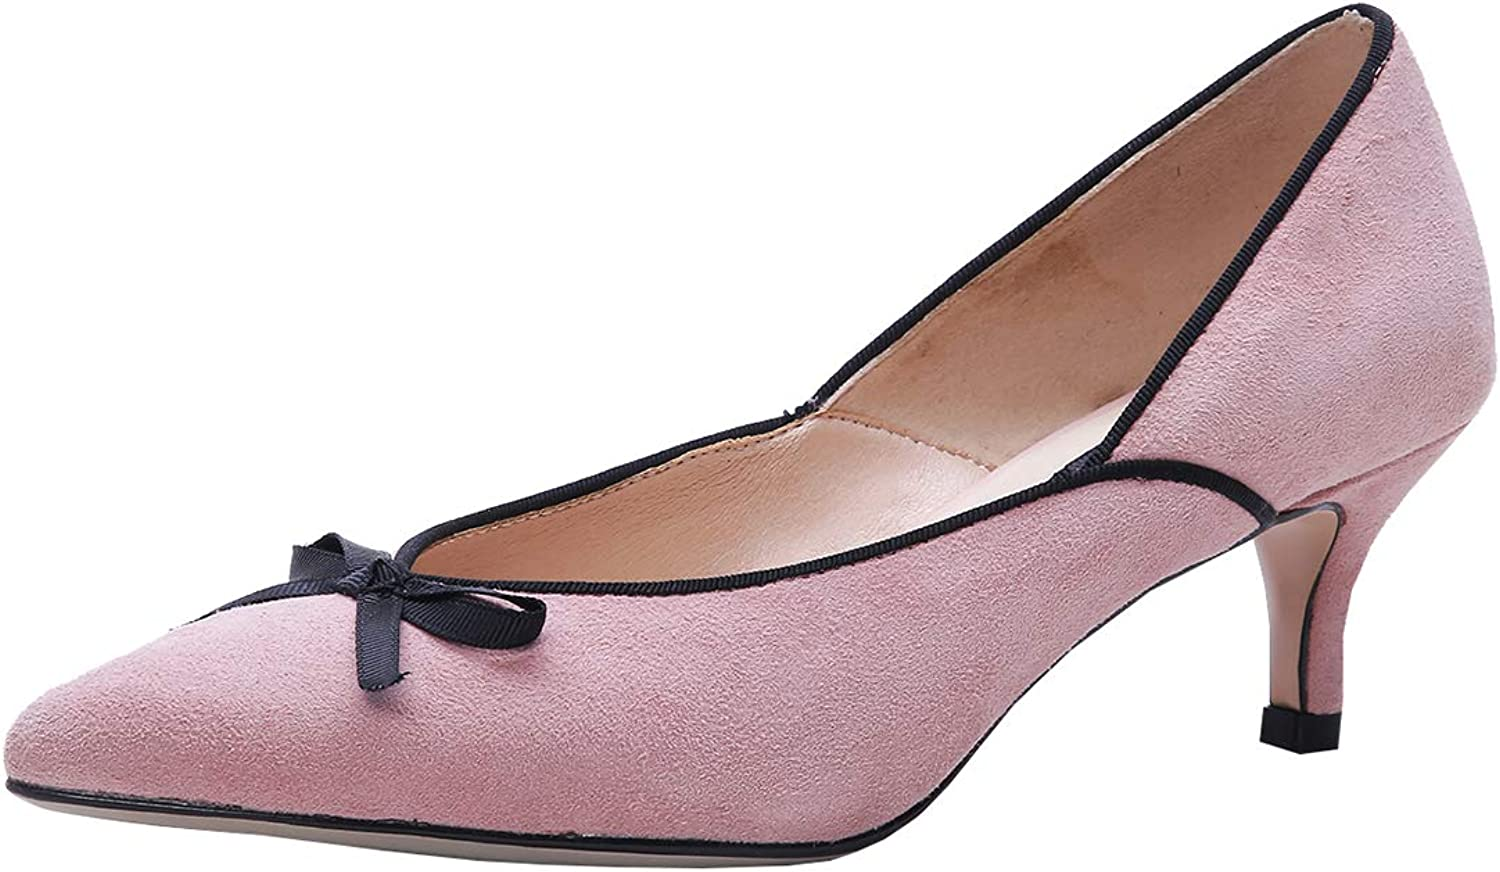 Artfaerie Womens Kitten Heel Pointed Toe Pumps Nubuck Leather Bridal Wedding Court shoes with Bows